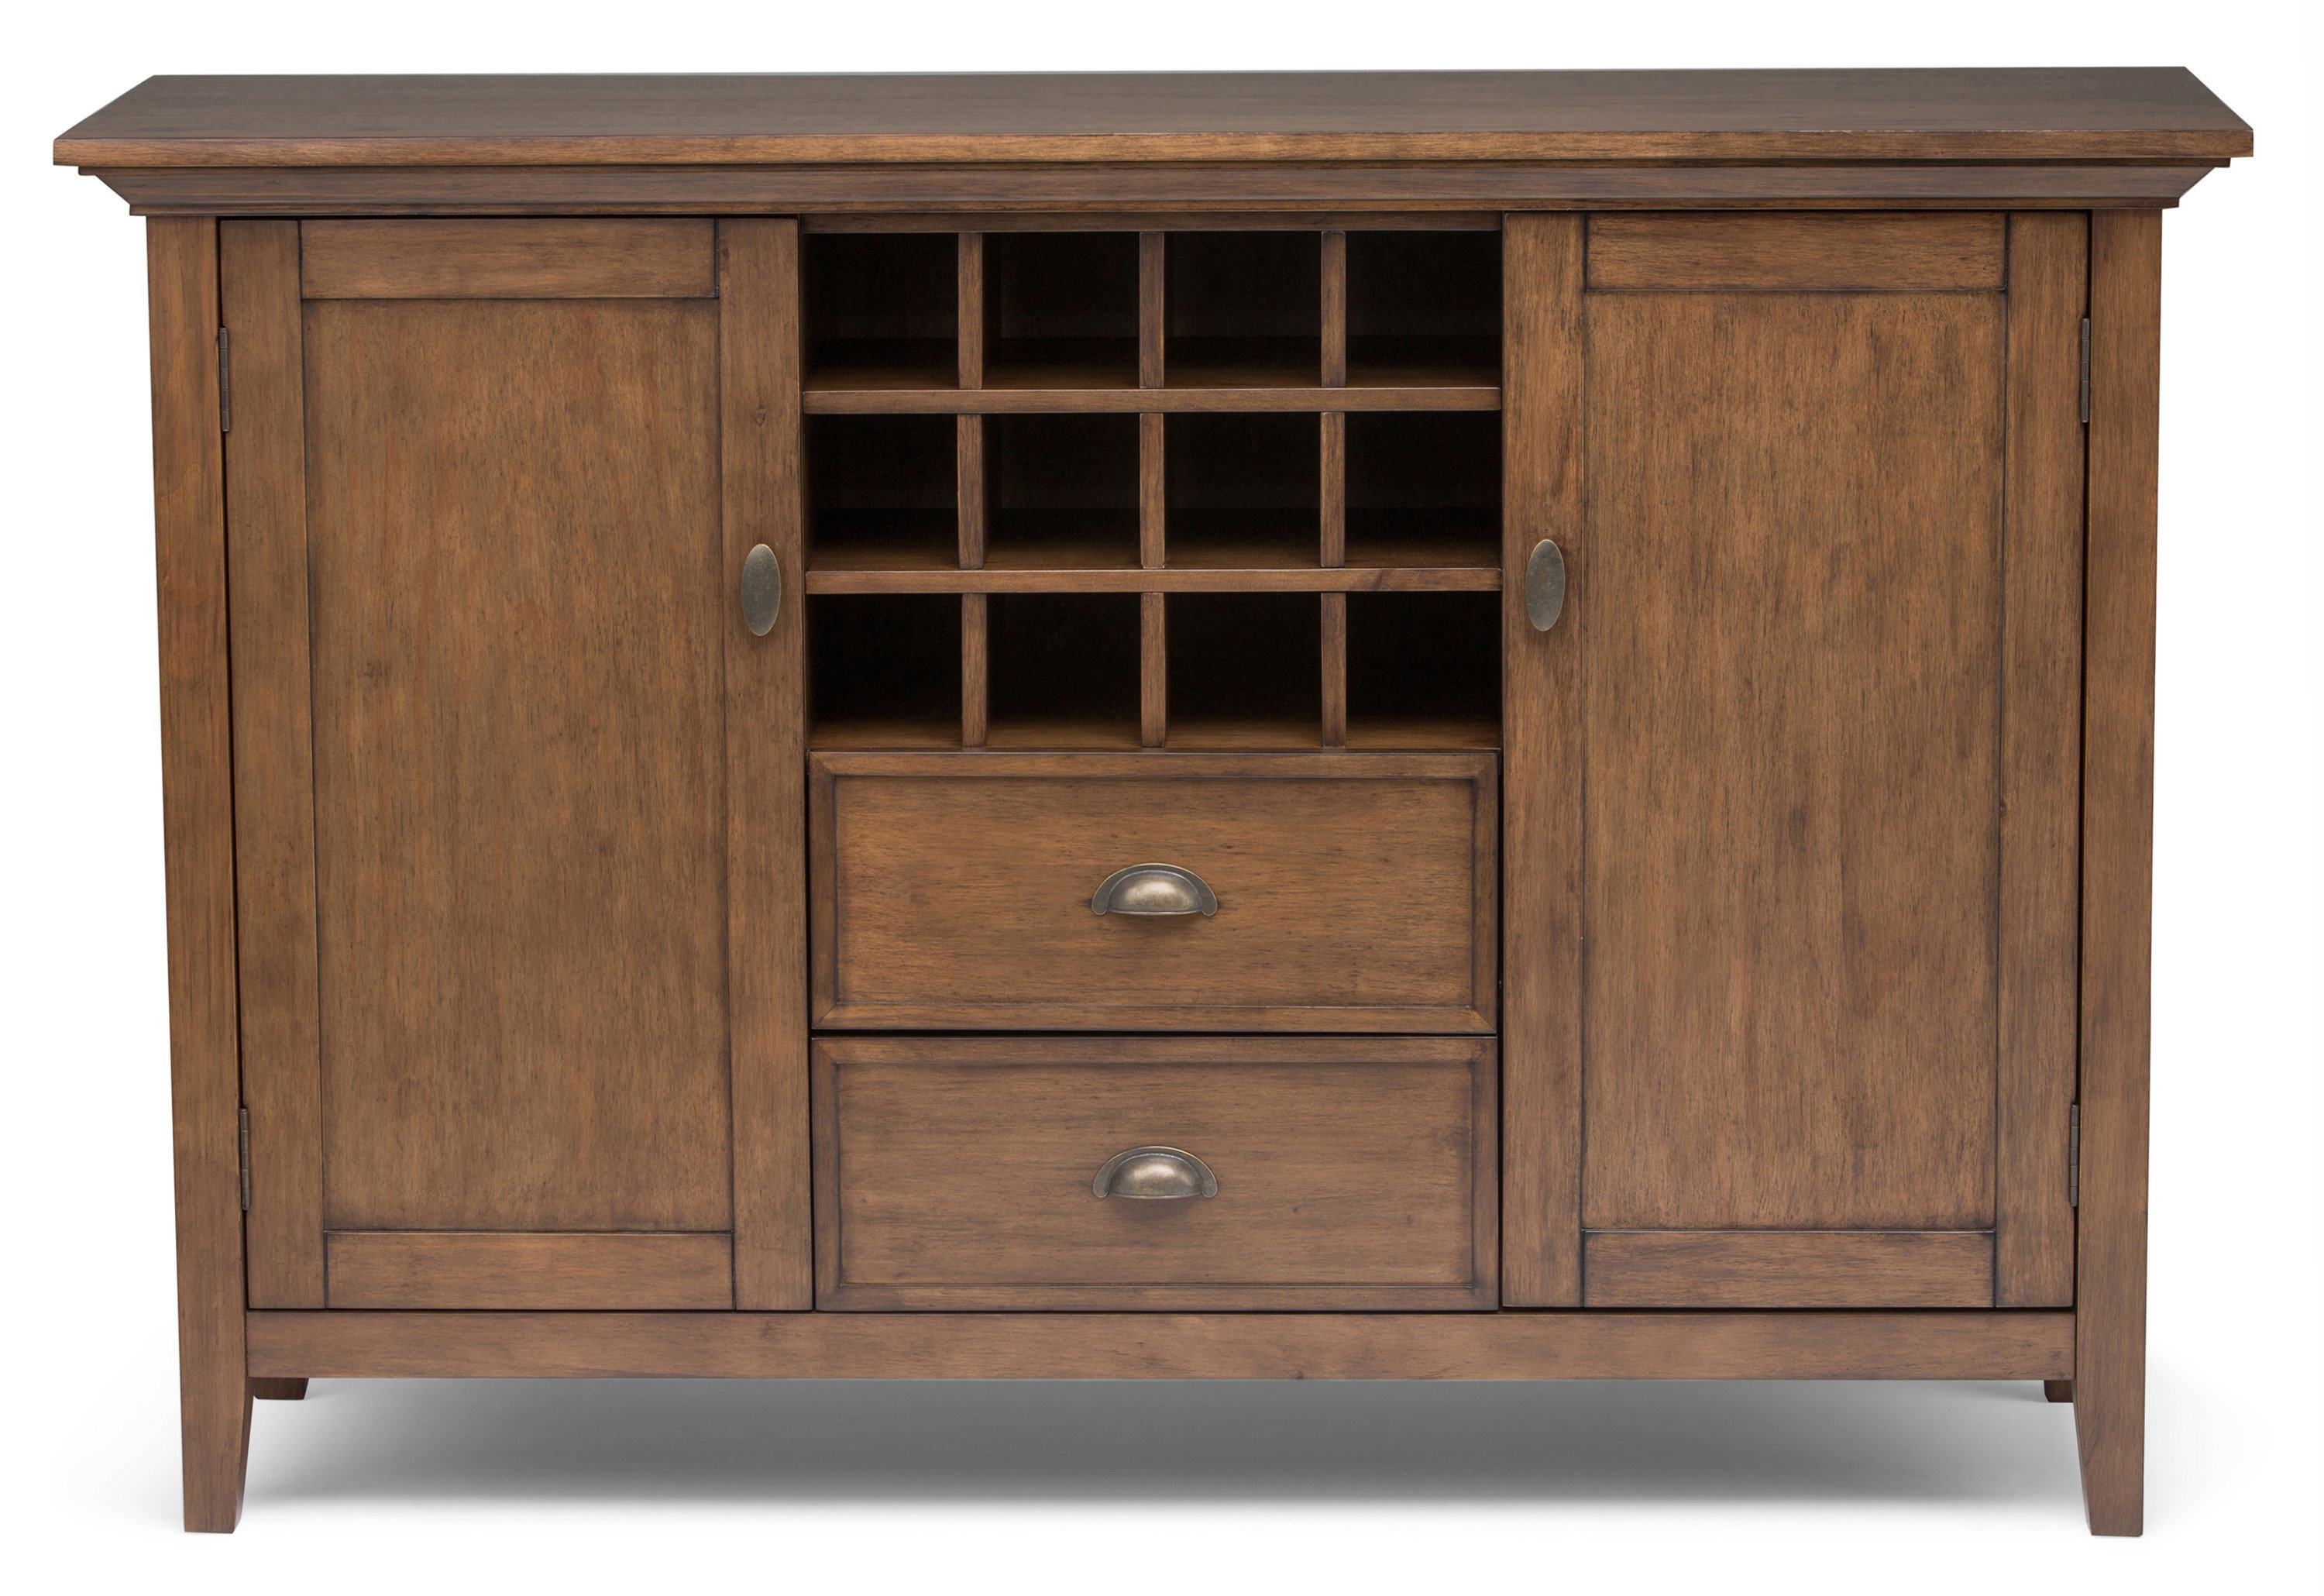 Amatury Sideboard Pertaining To Tilman Sideboards (View 10 of 20)